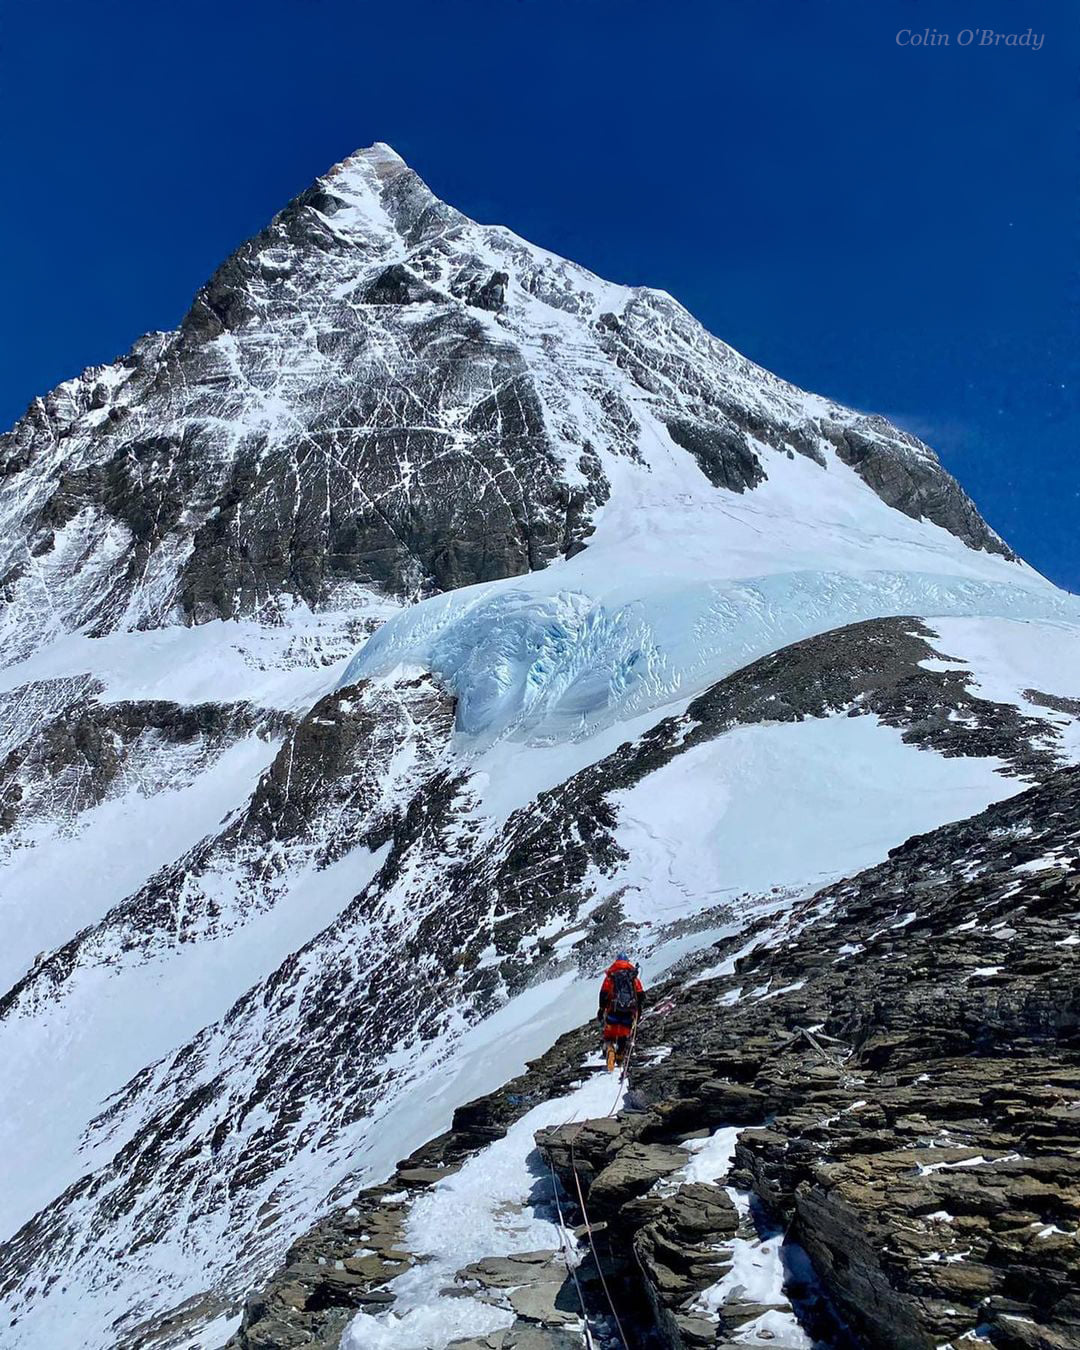 rock, snow, and ice on the Everest summit pyramid.